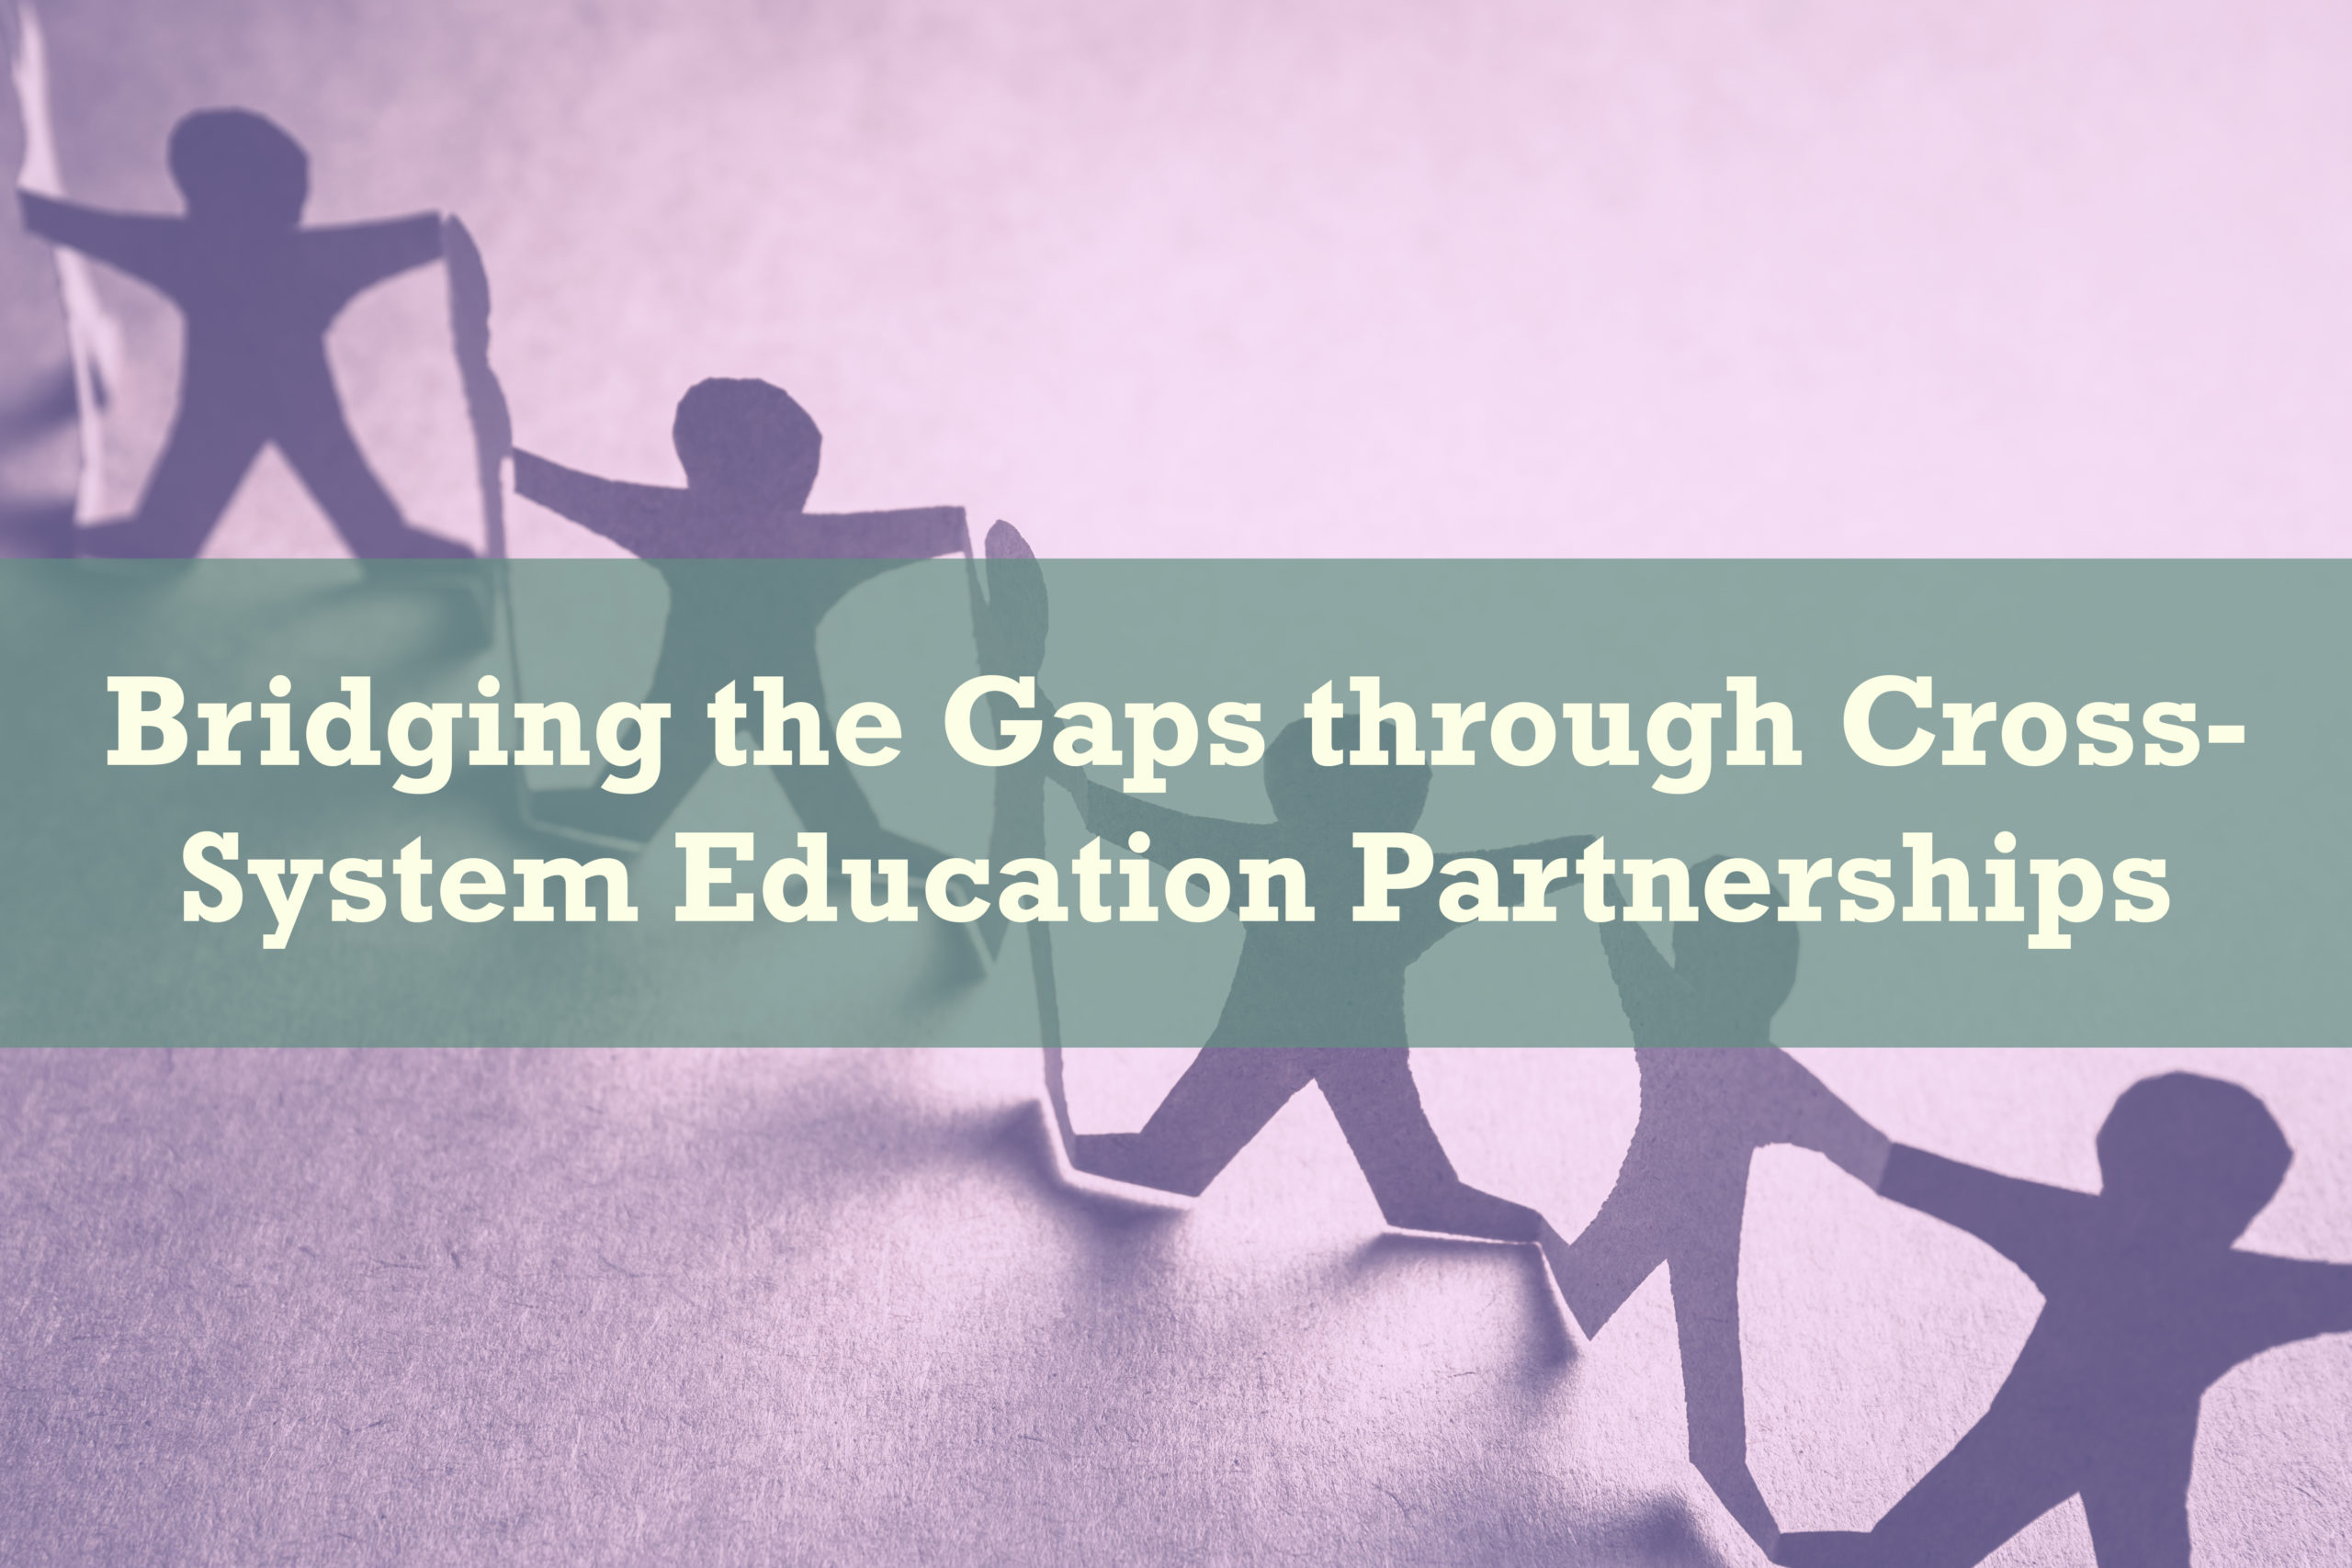 Bridging the Gaps through Cross-System Education Partnerships